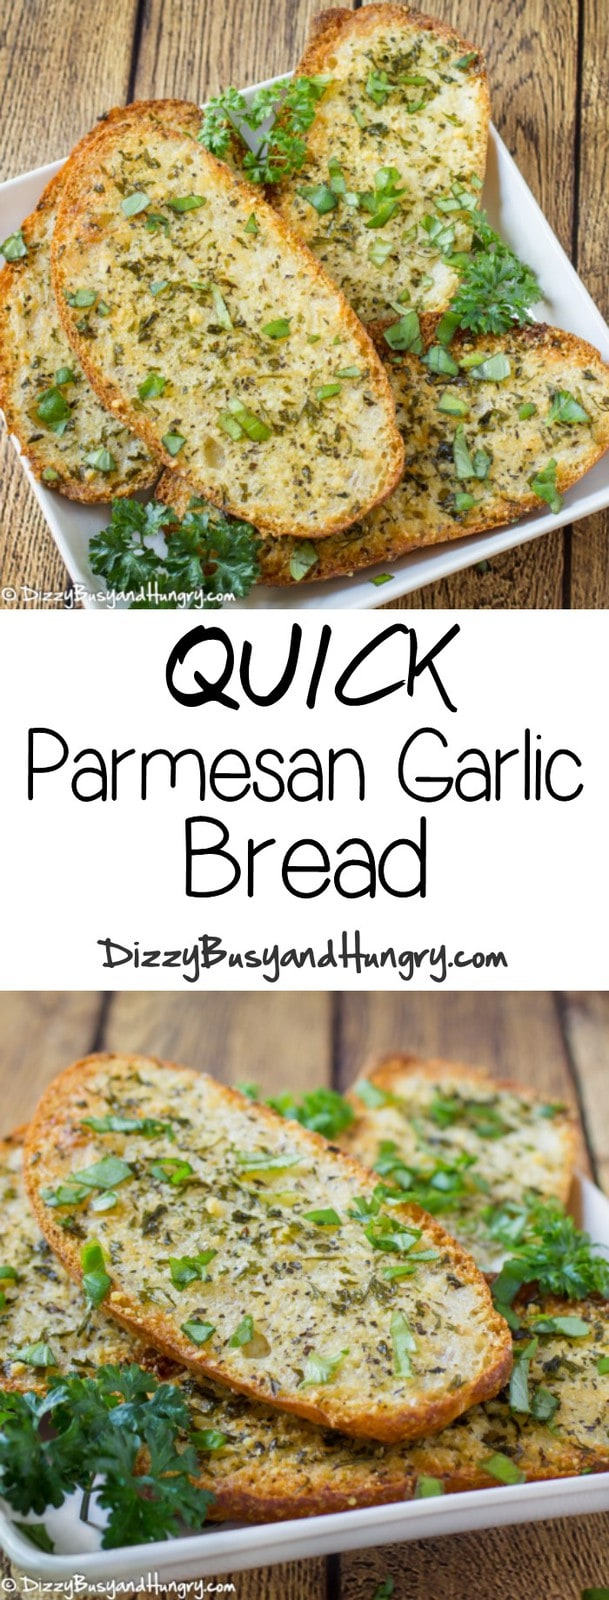 Quick Parmesan Garlic Bread | DizzyBusyandHungry.com - Super-easy, better than store-bought, and a great way to use up leftover bread or rolls!